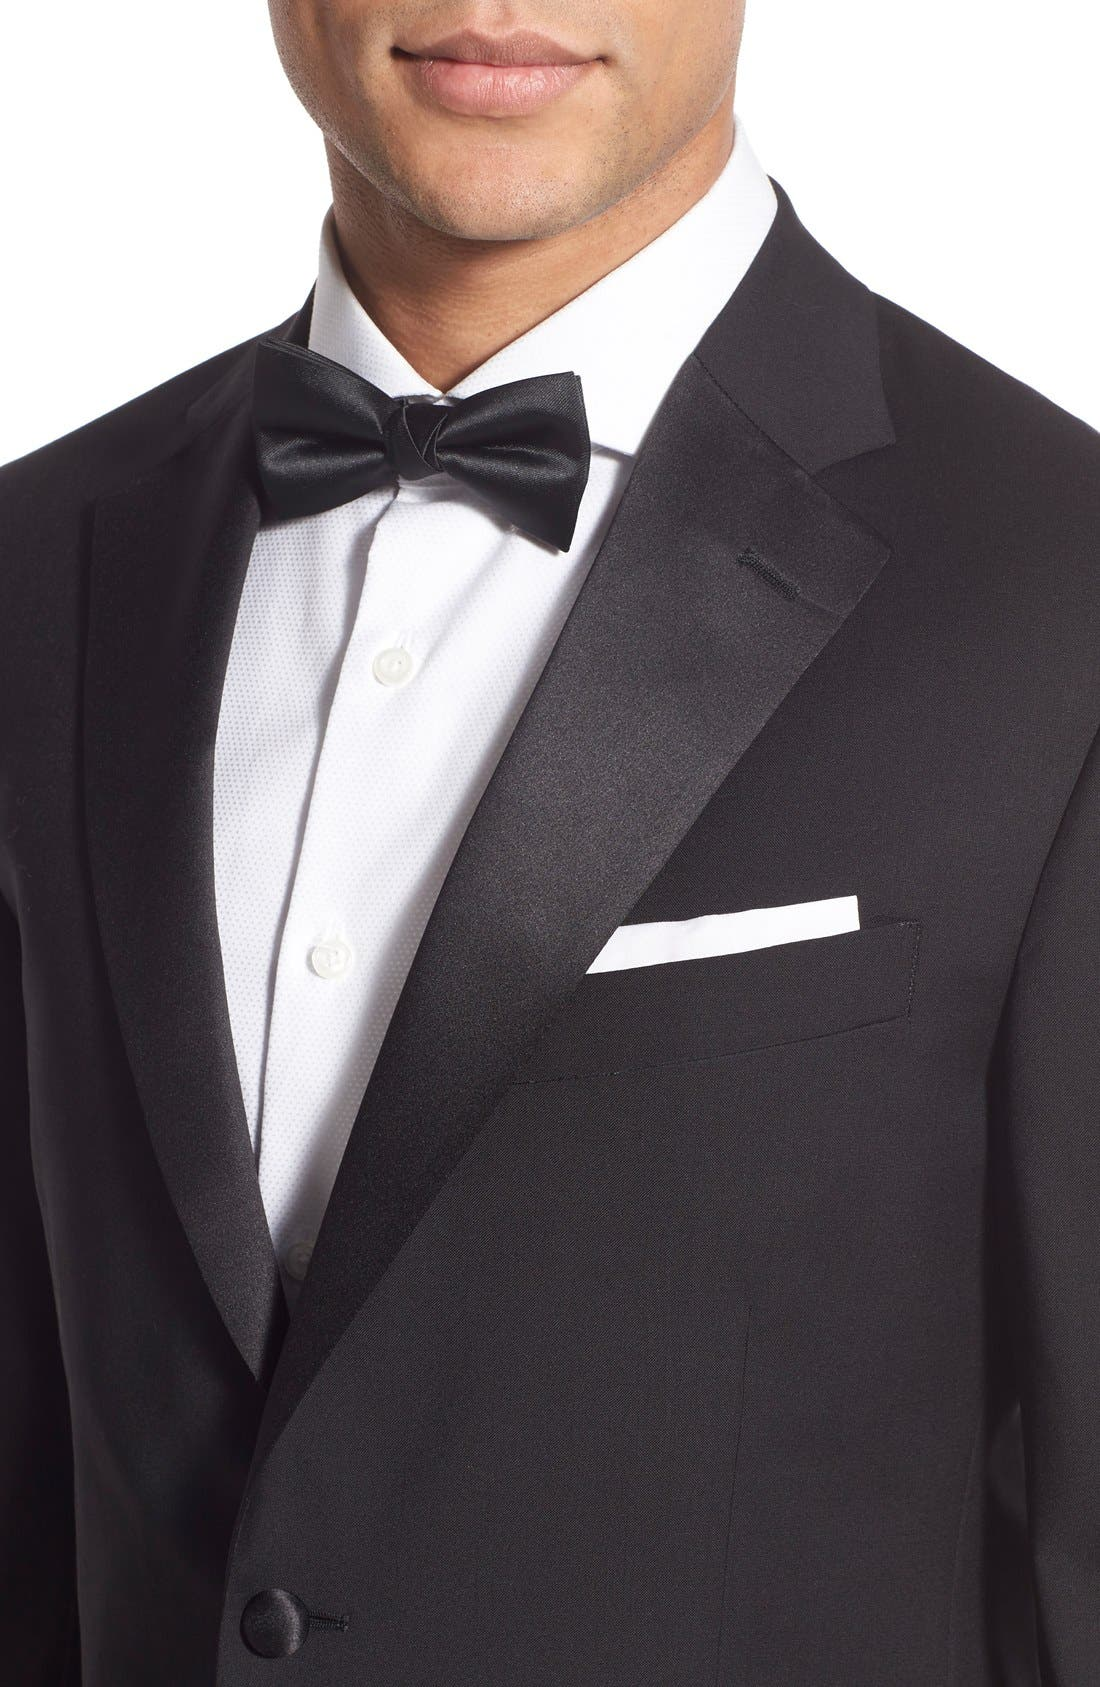 Trim Fit Wool Tuxedo,                             Alternate thumbnail 7, color,                             BLACK